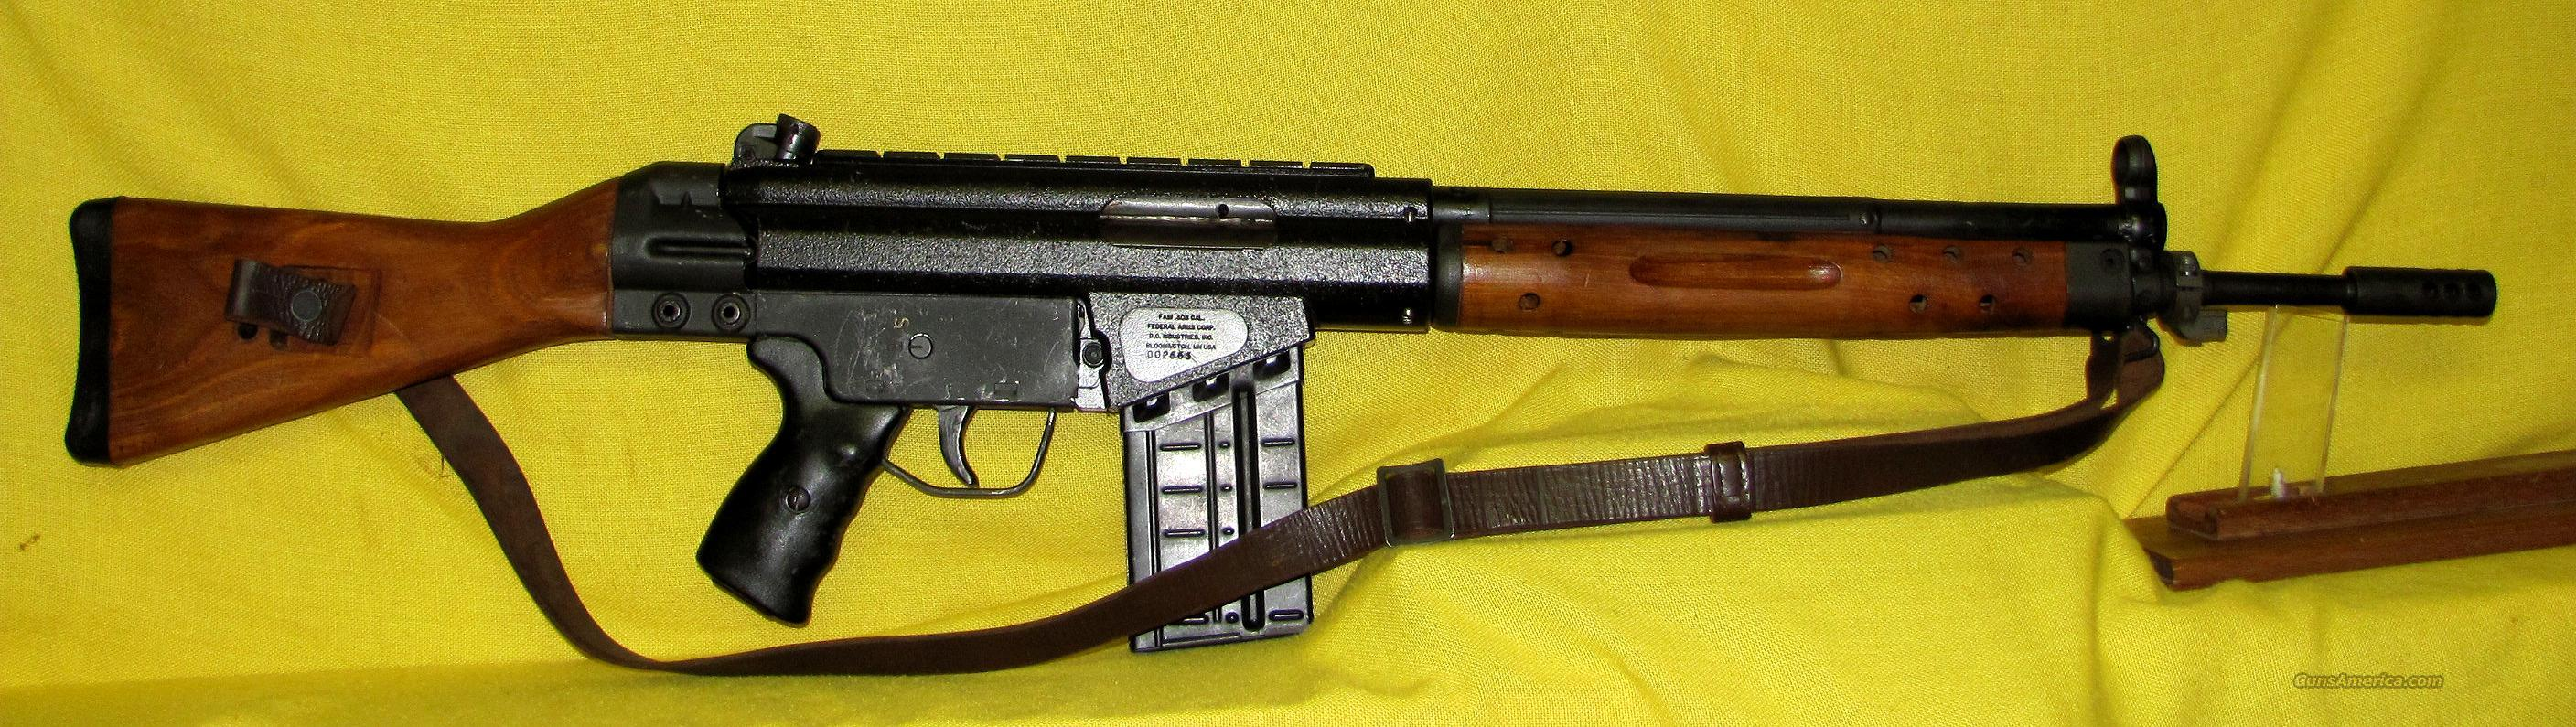 "FEDERAL ARMS FA91 .308 20"" BARREL  Guns > Rifles > F Misc Rifles"